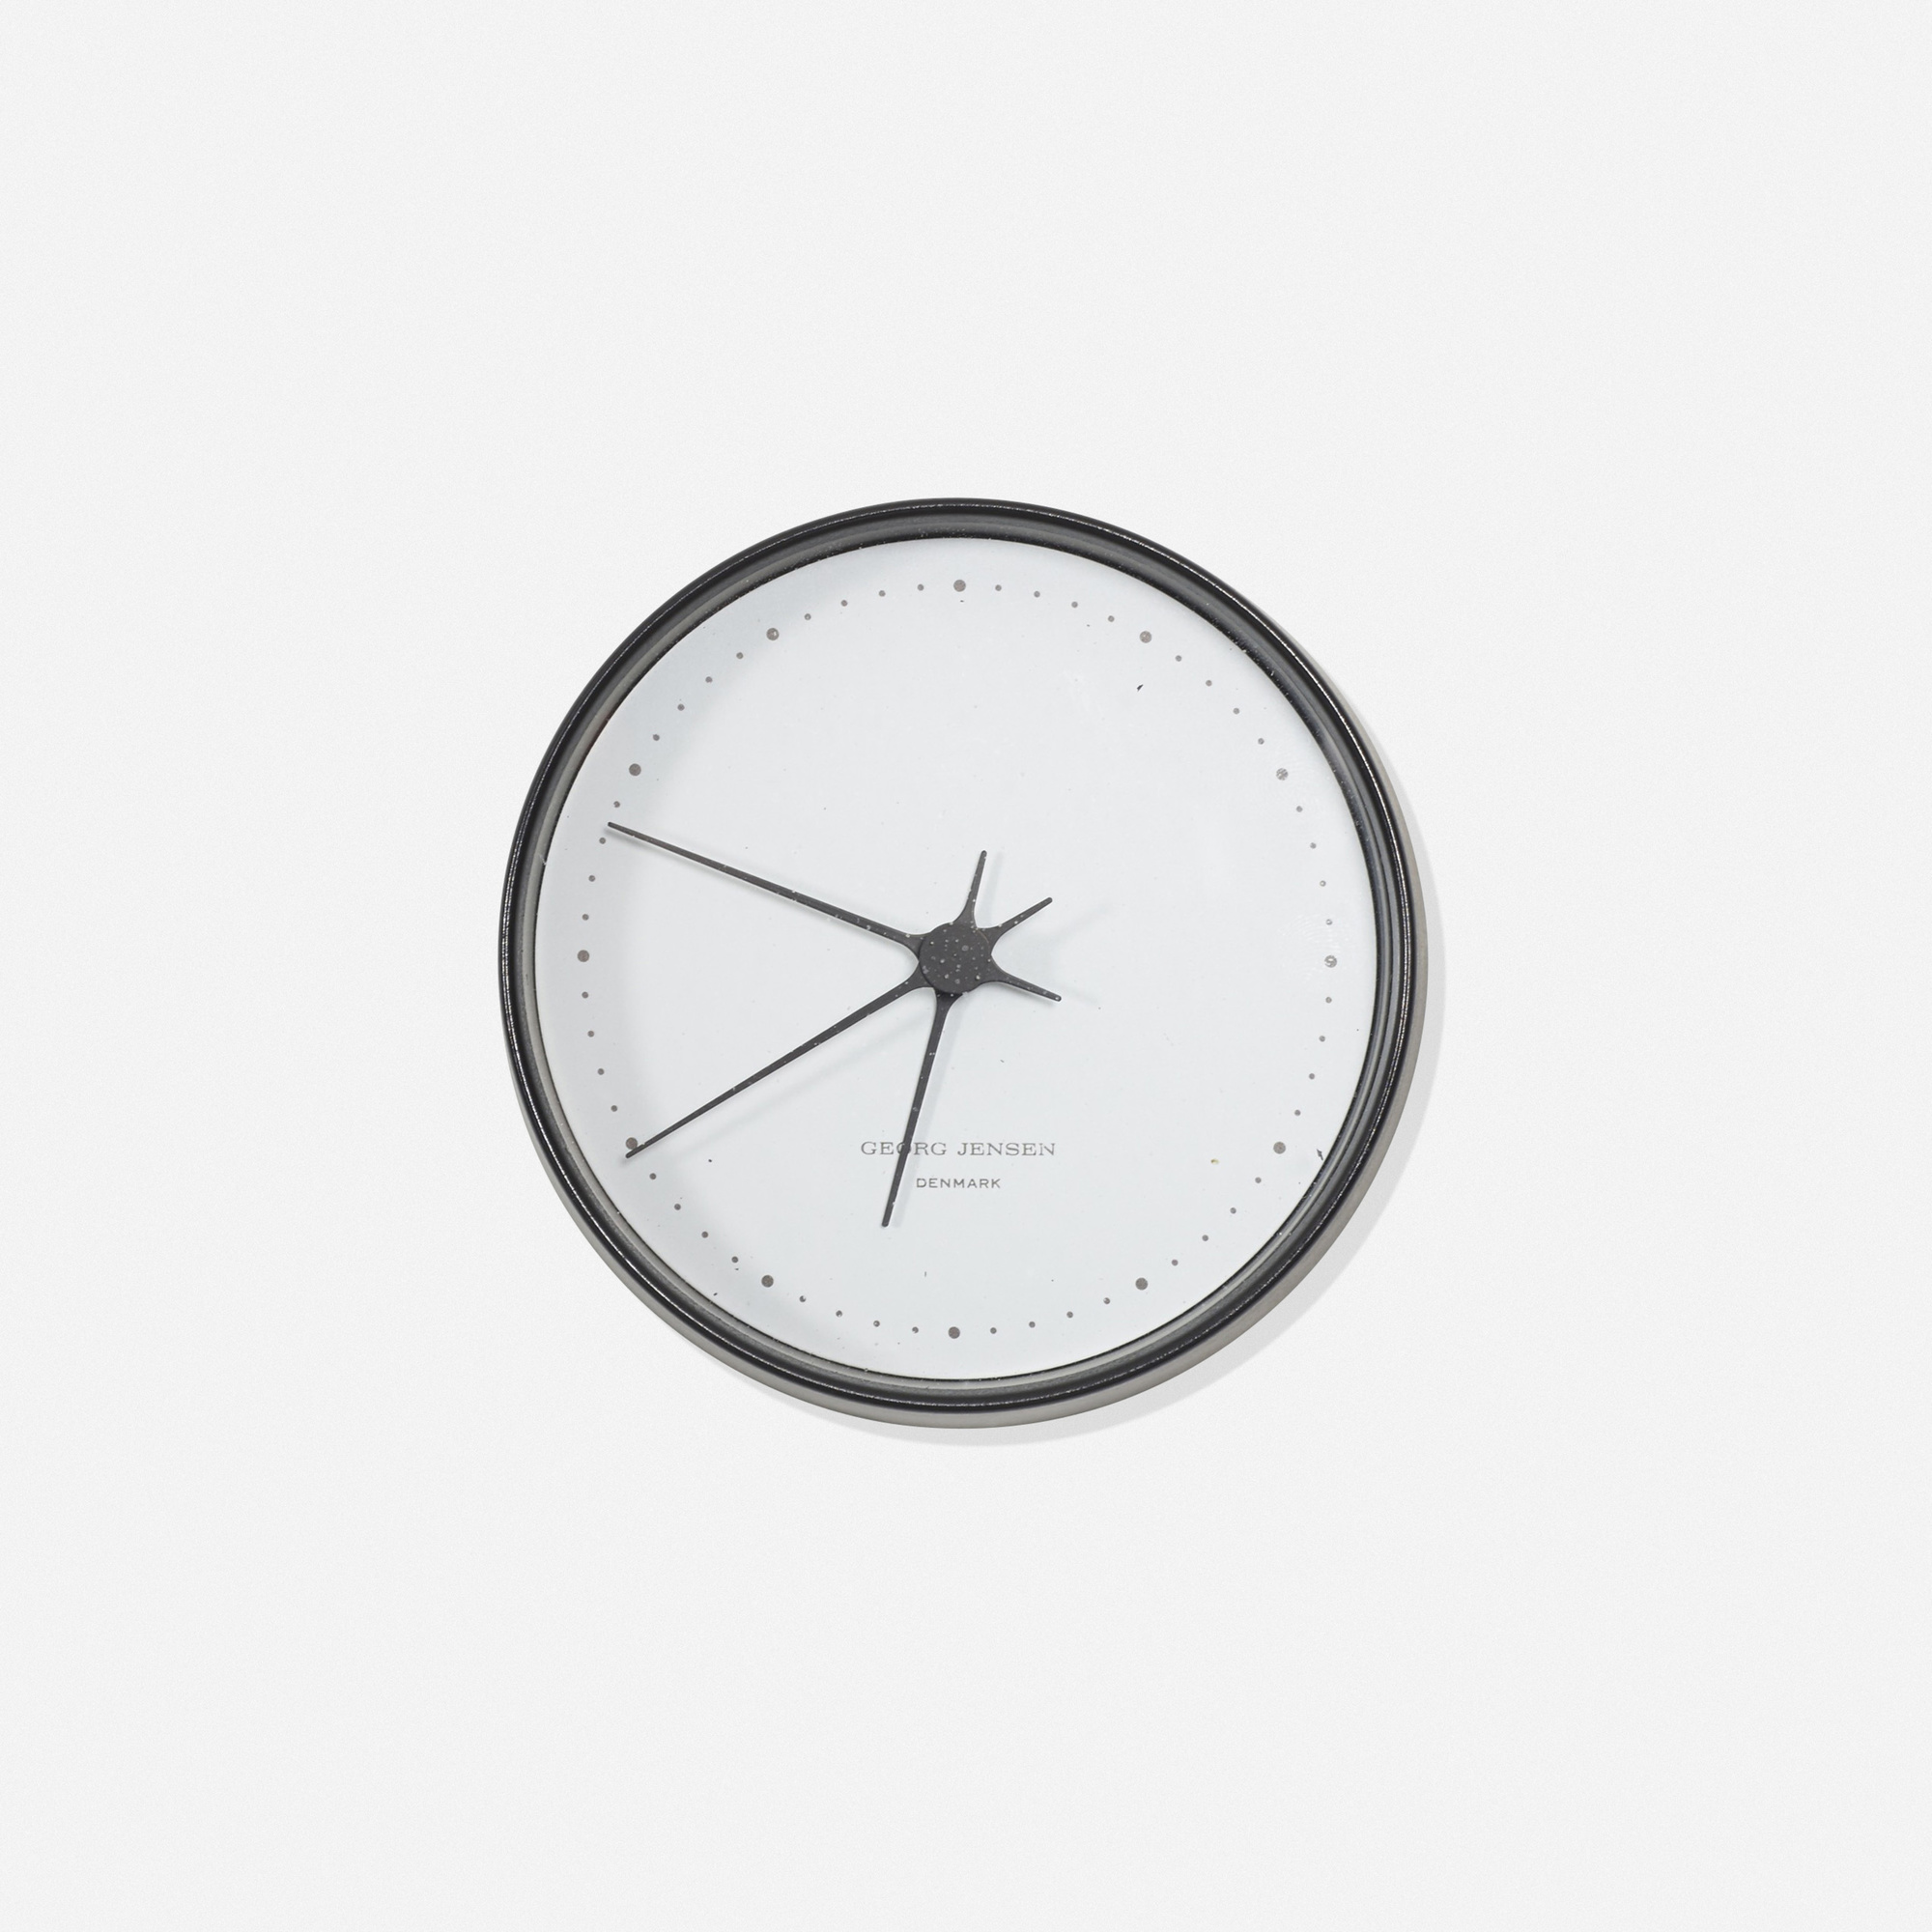 401: Henning Koppel / wall clock (1 of 2)